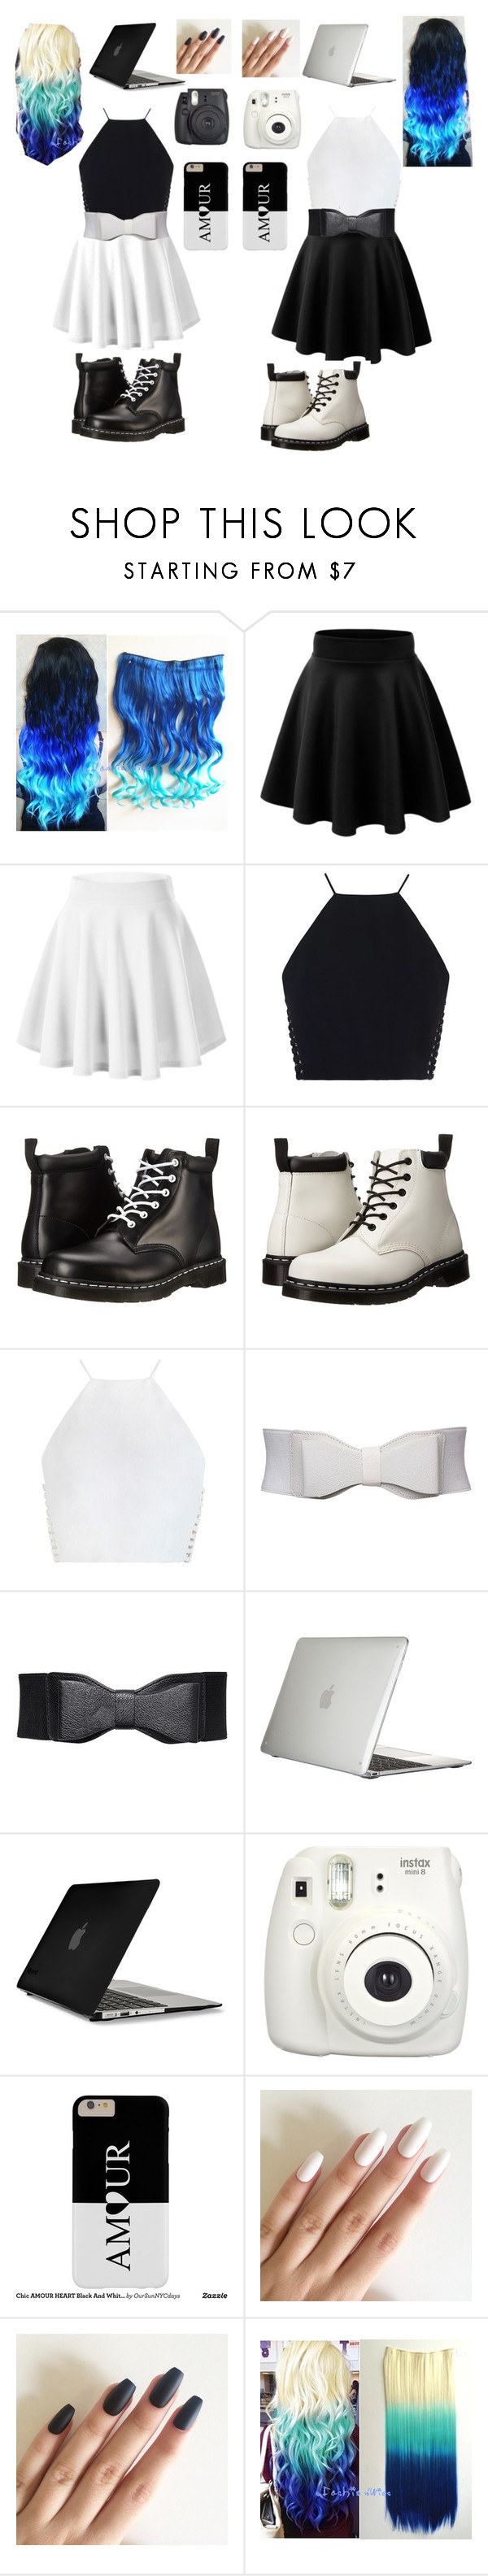 """""""White and black techno besties"""" by rissacoleman ❤ liked on Polyvore featuring Zimmermann, Dr. Martens and Speck"""